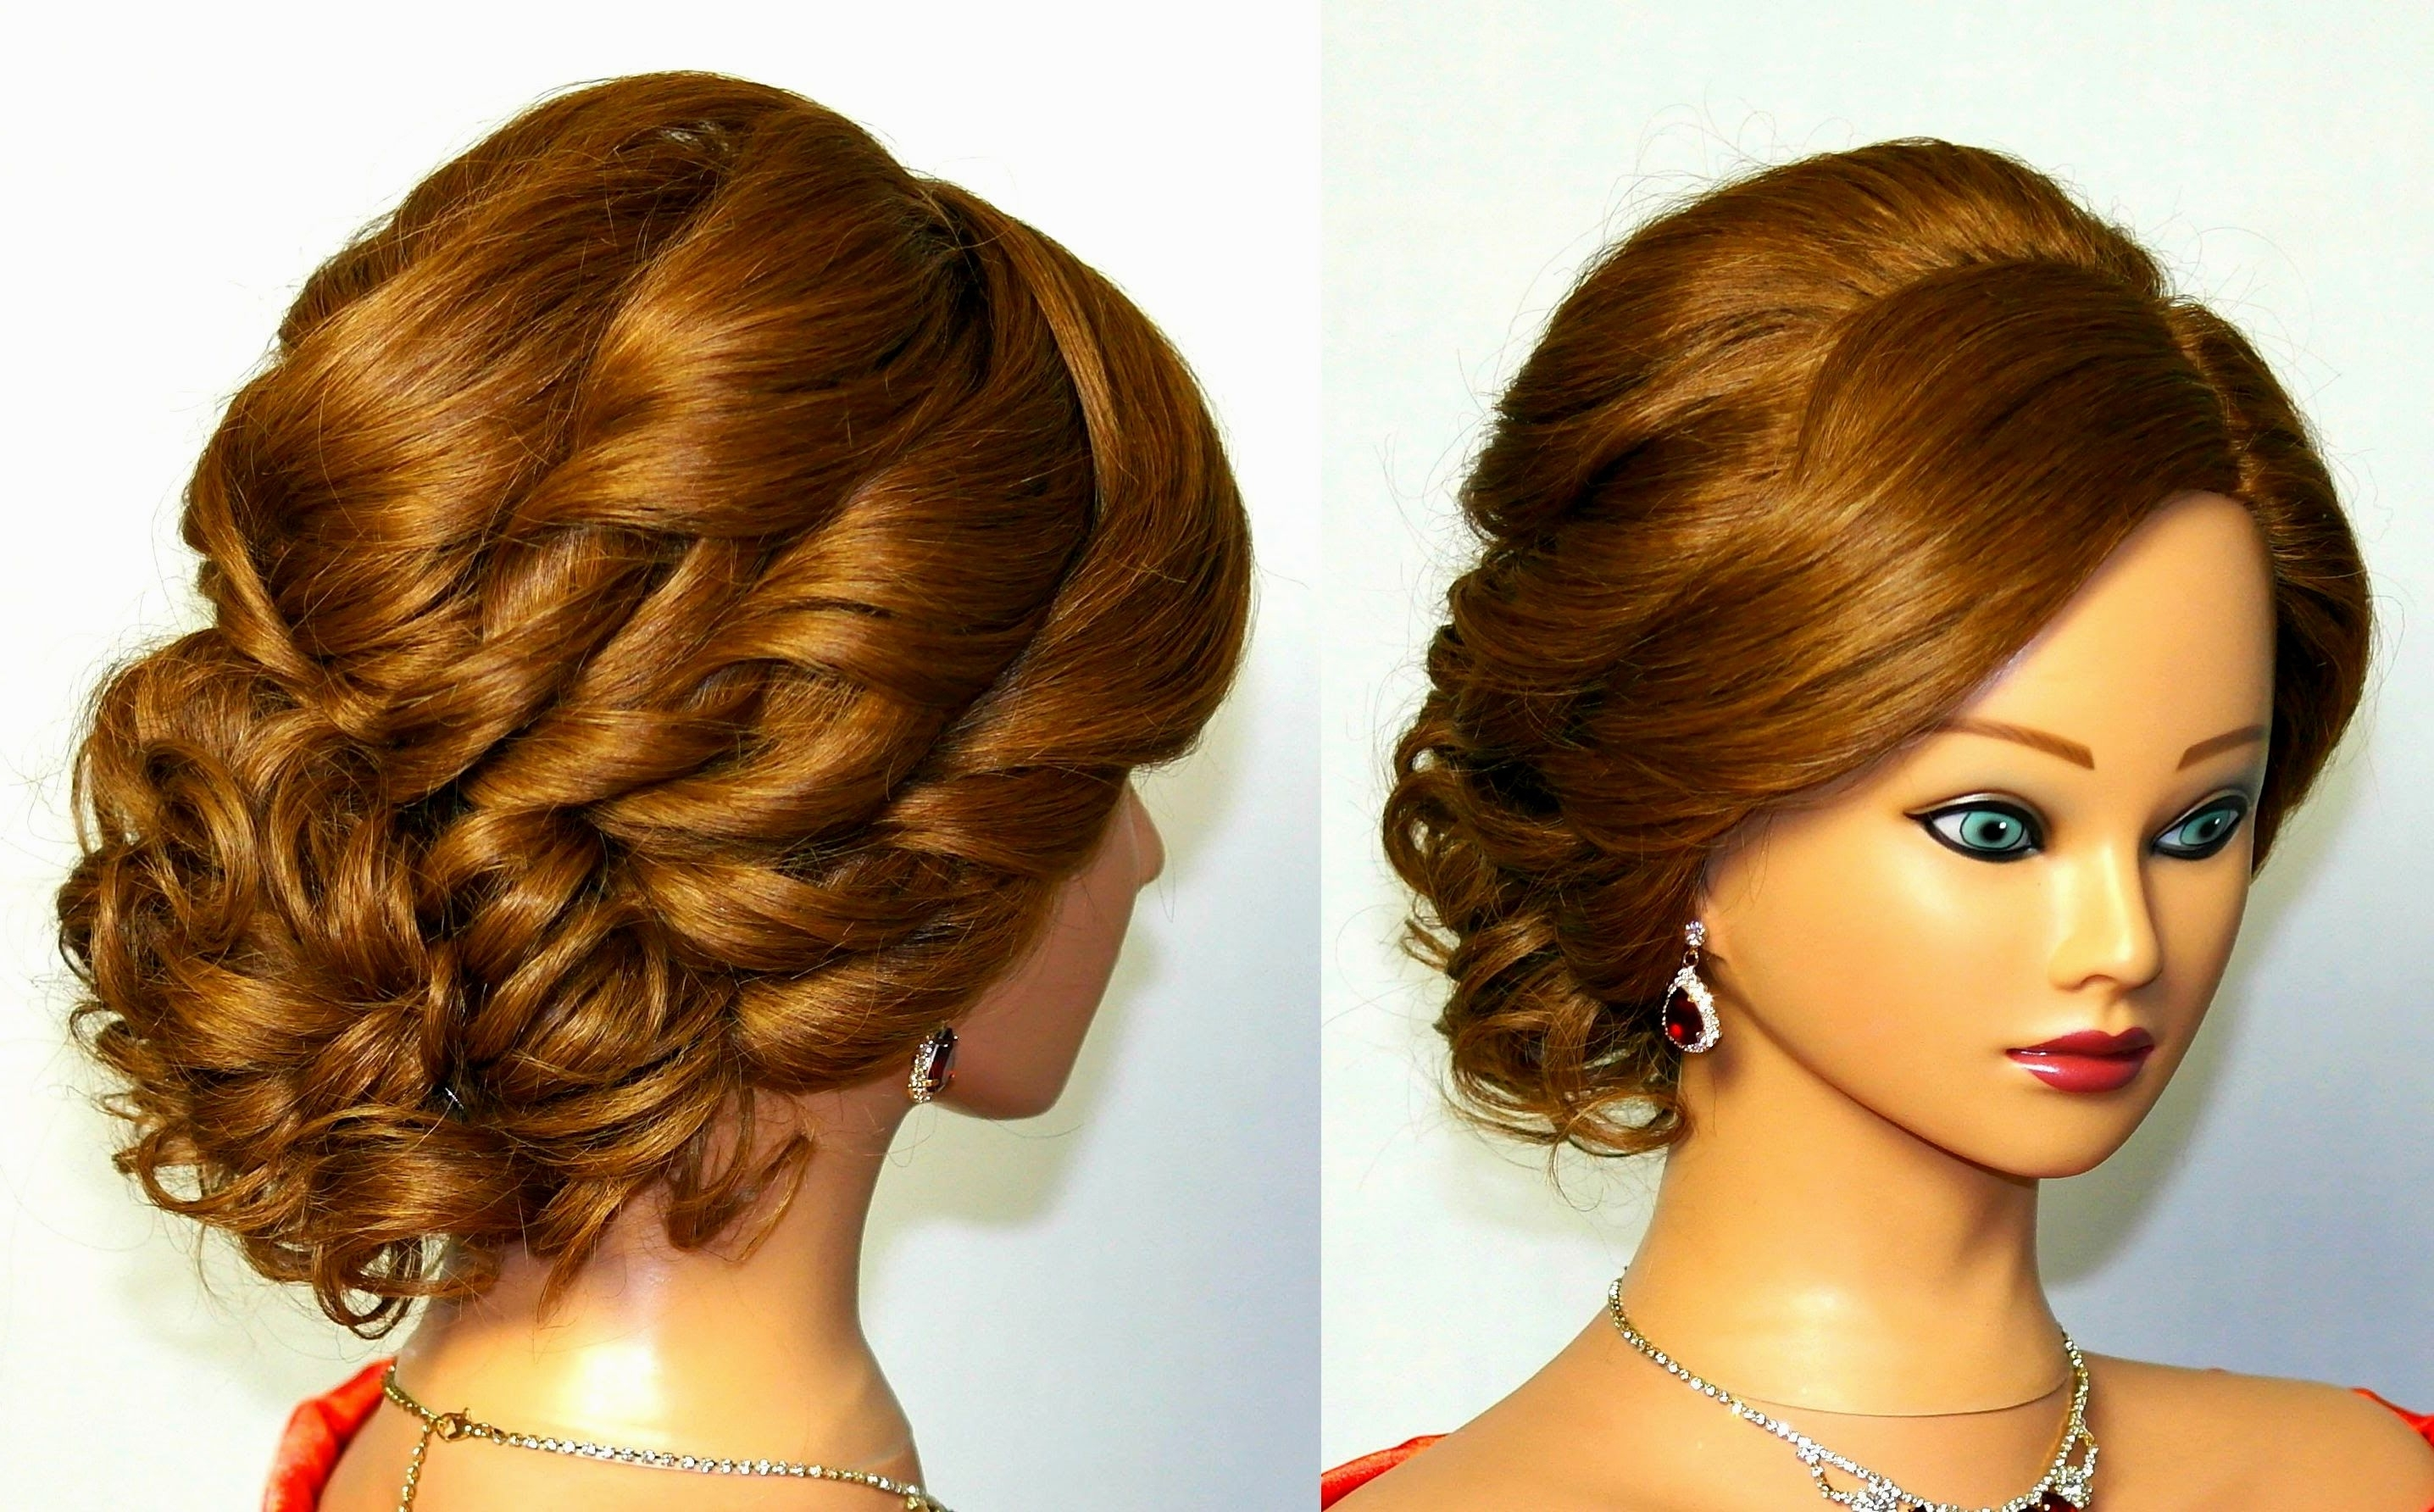 Bridesmaid Hairstyles Curly Hair Updo Hairstyle Pop Ideas Of Curly Within Curly Hair Updo Hairstyles (View 1 of 15)